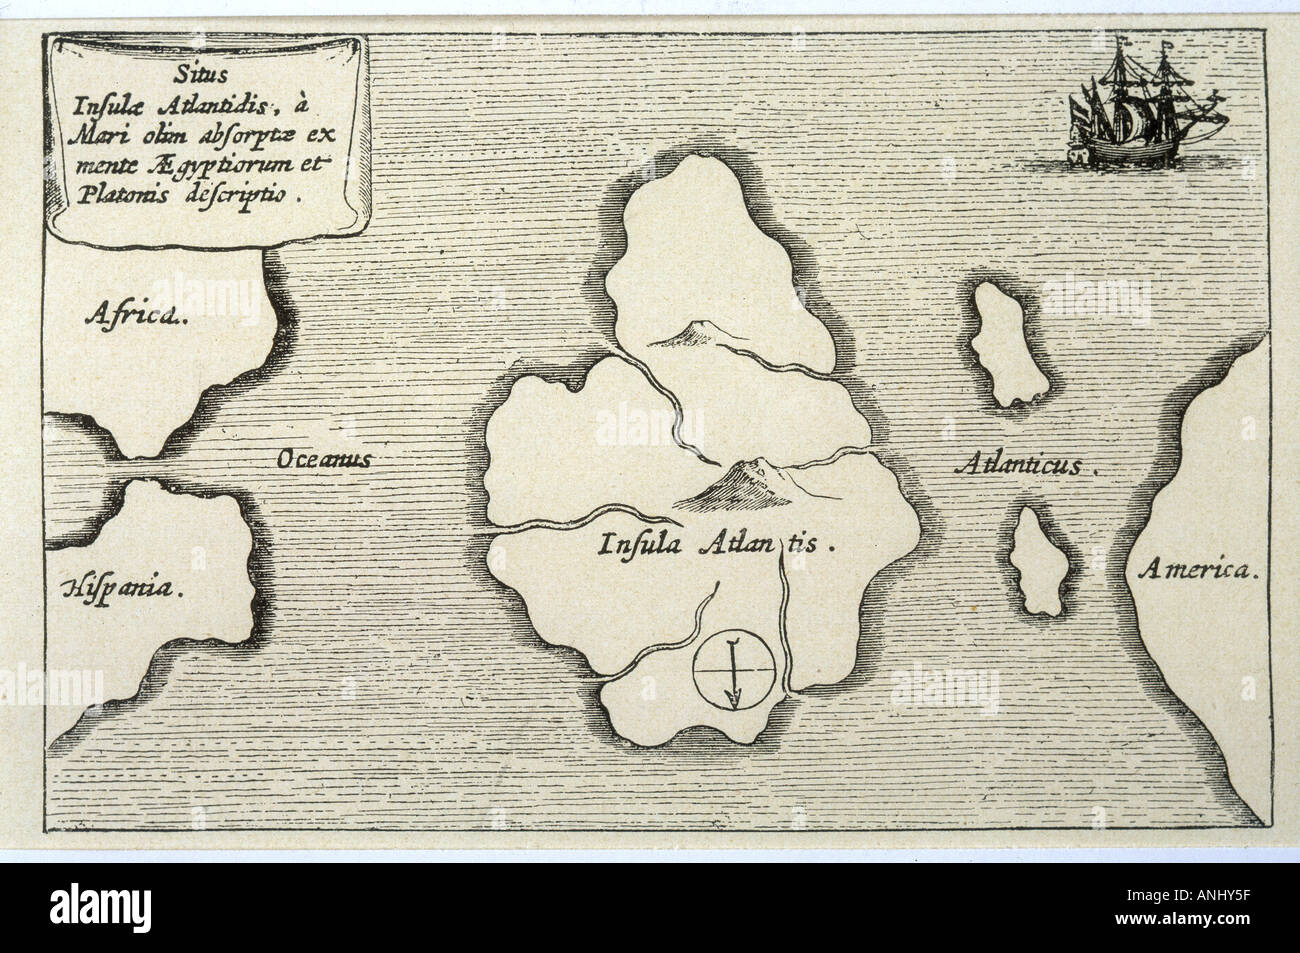 Map Of Atlantis Kircher - Stock Image